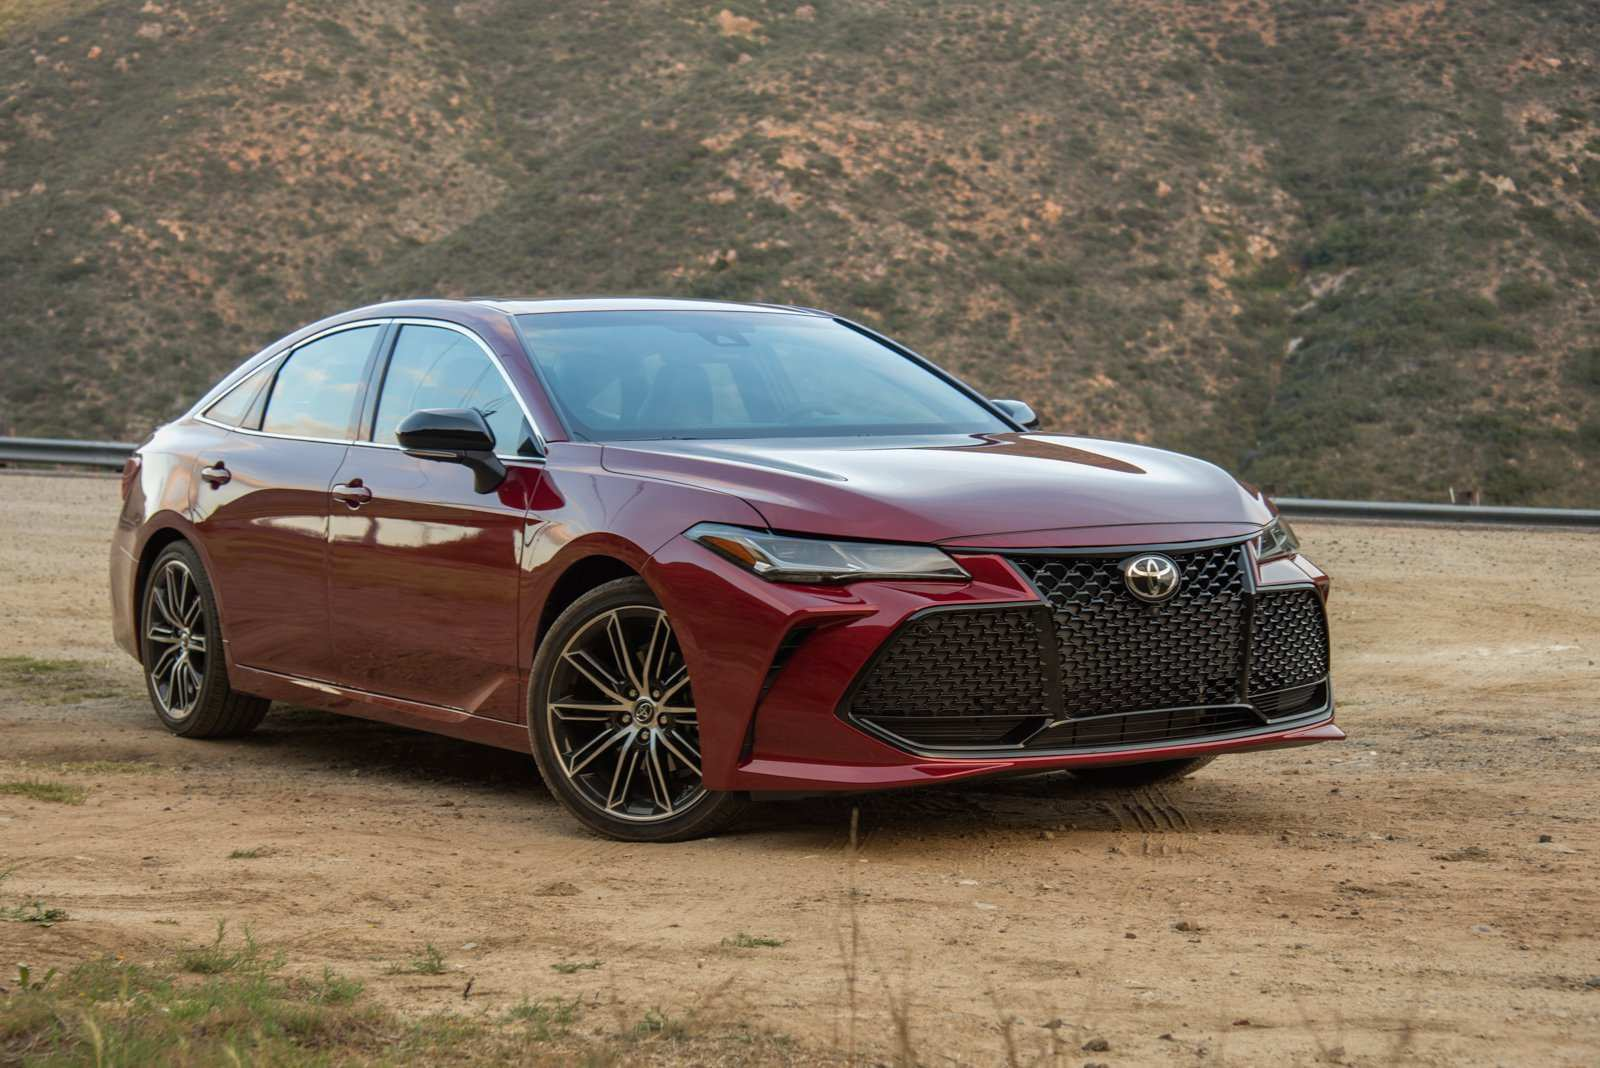 61 All New 2019 Toyota Avalon Review Rumors